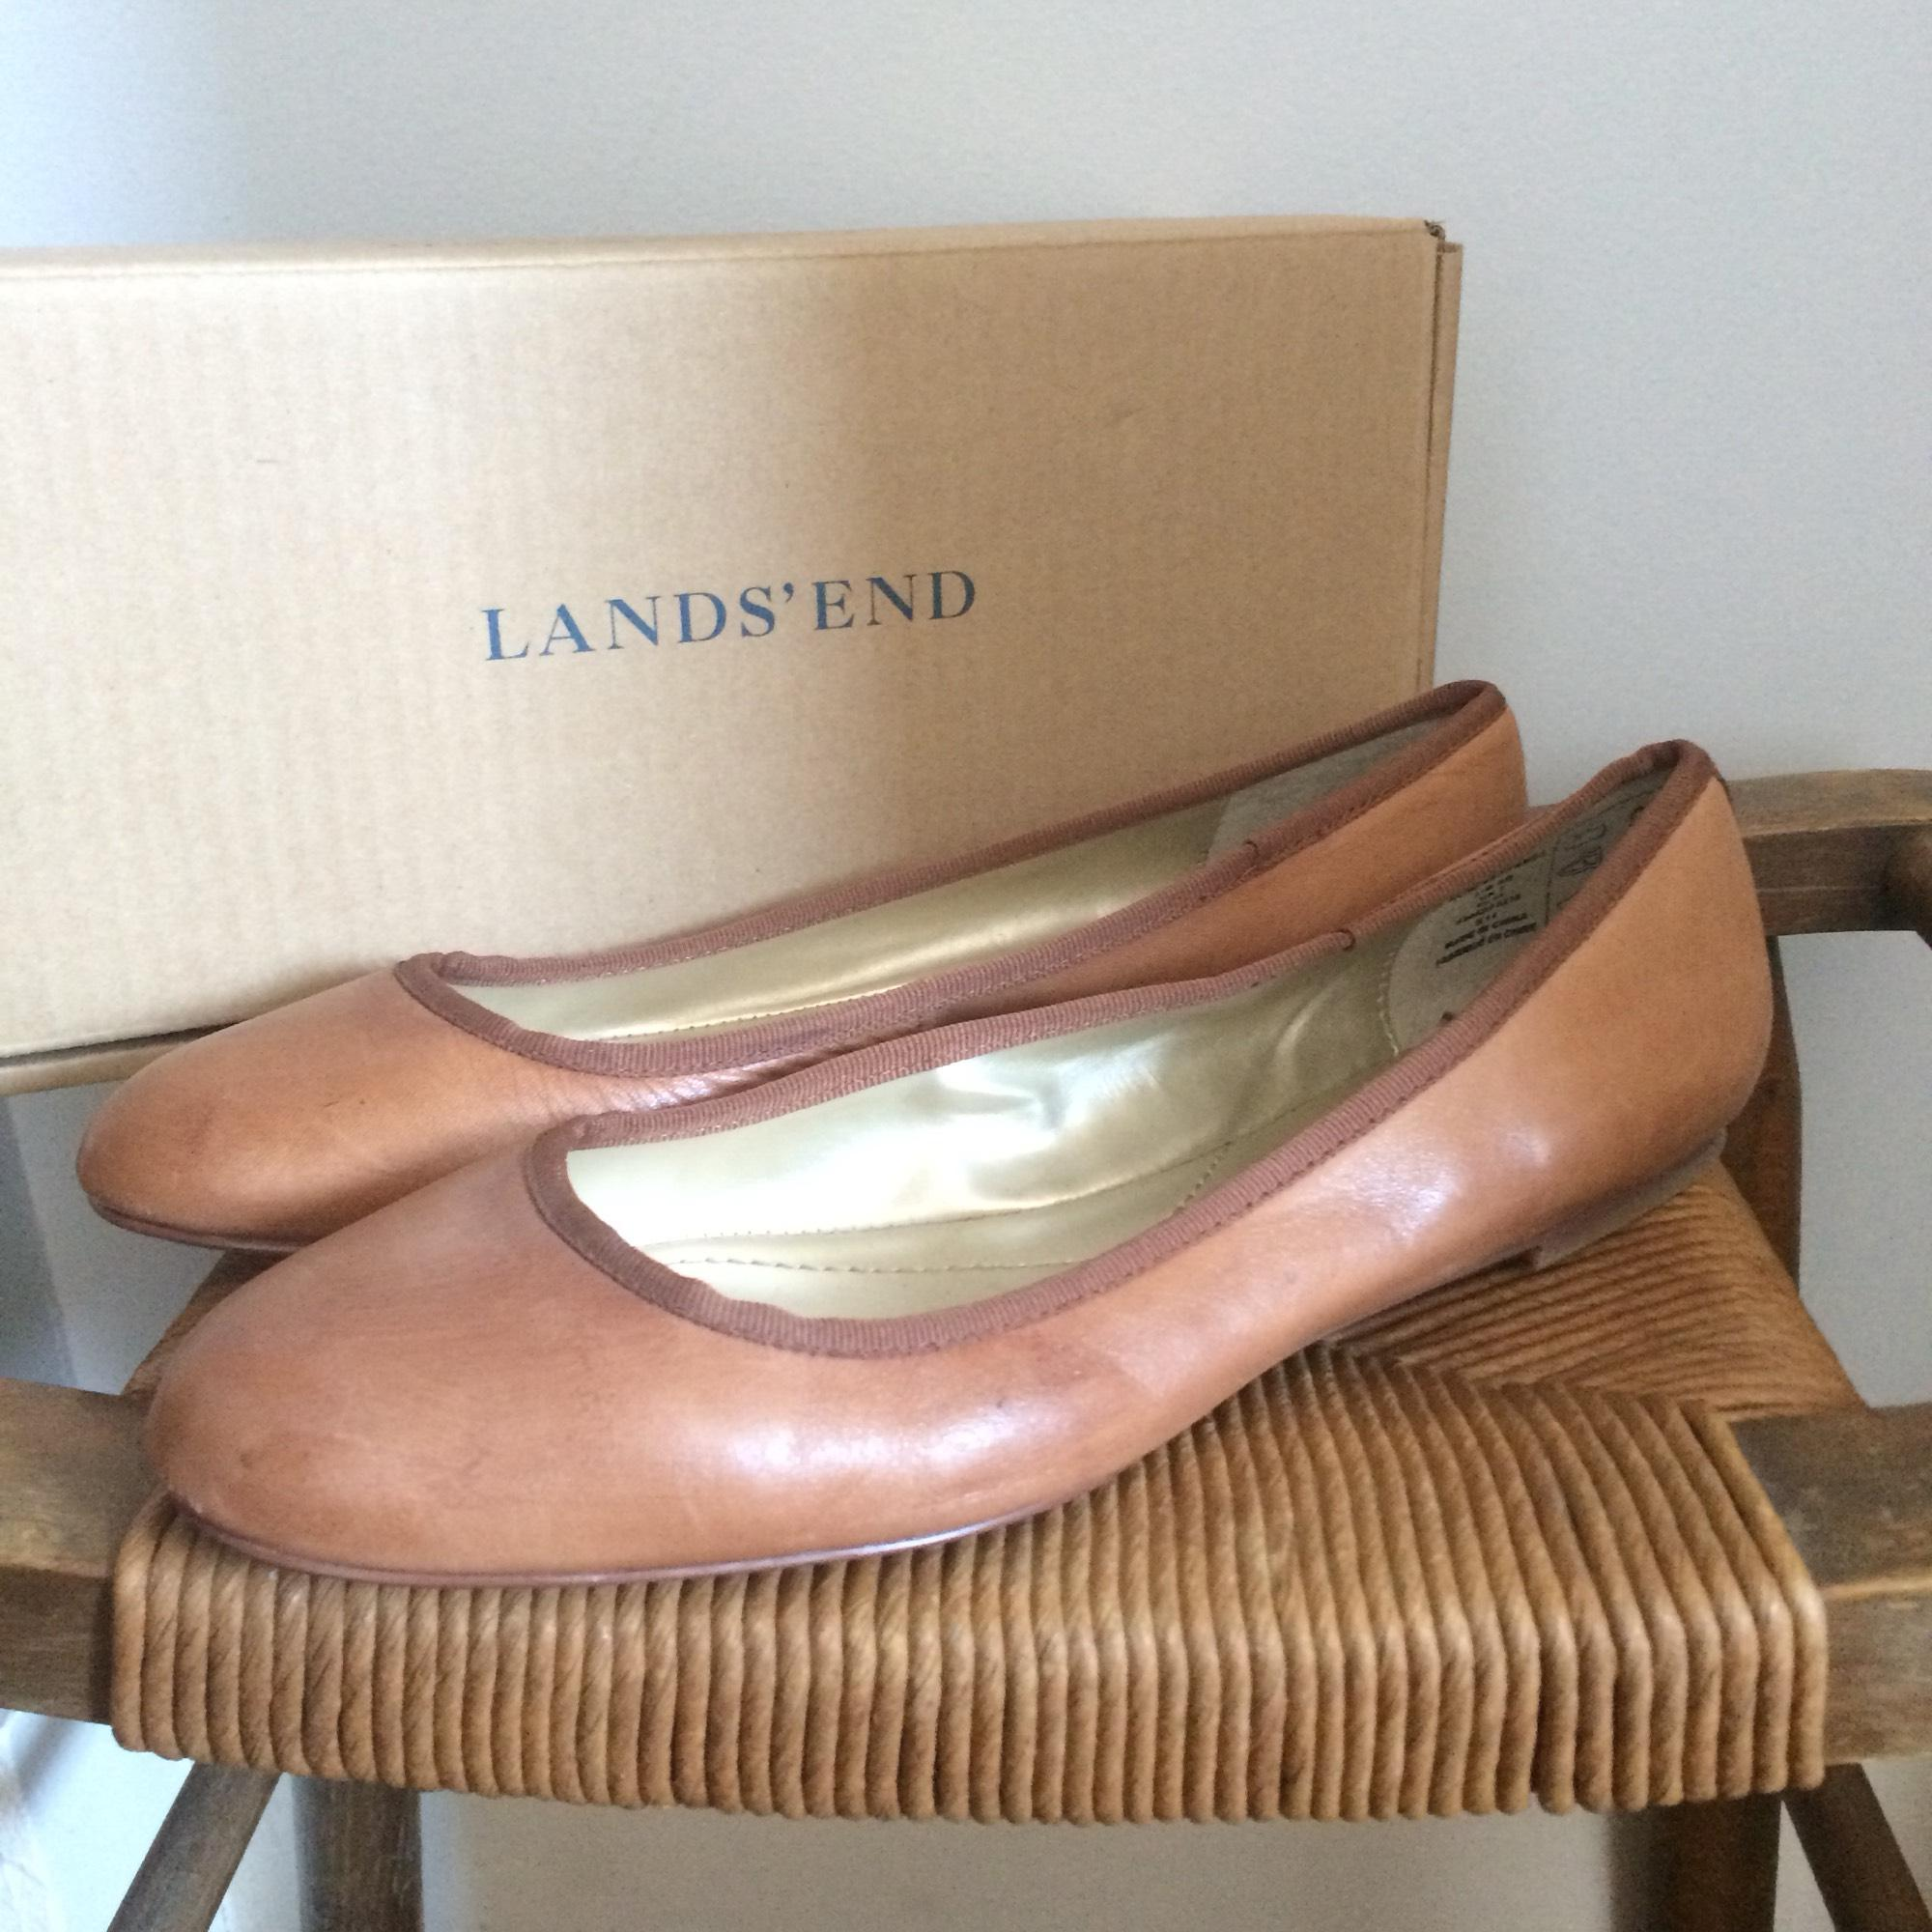 Comely End Luggage Tan End Luggage Tan Emma Classic Ballet Flats Size Us Regular Lands End Monogrammed Bag Lands End Luggage Competition baby Lands End Luggage